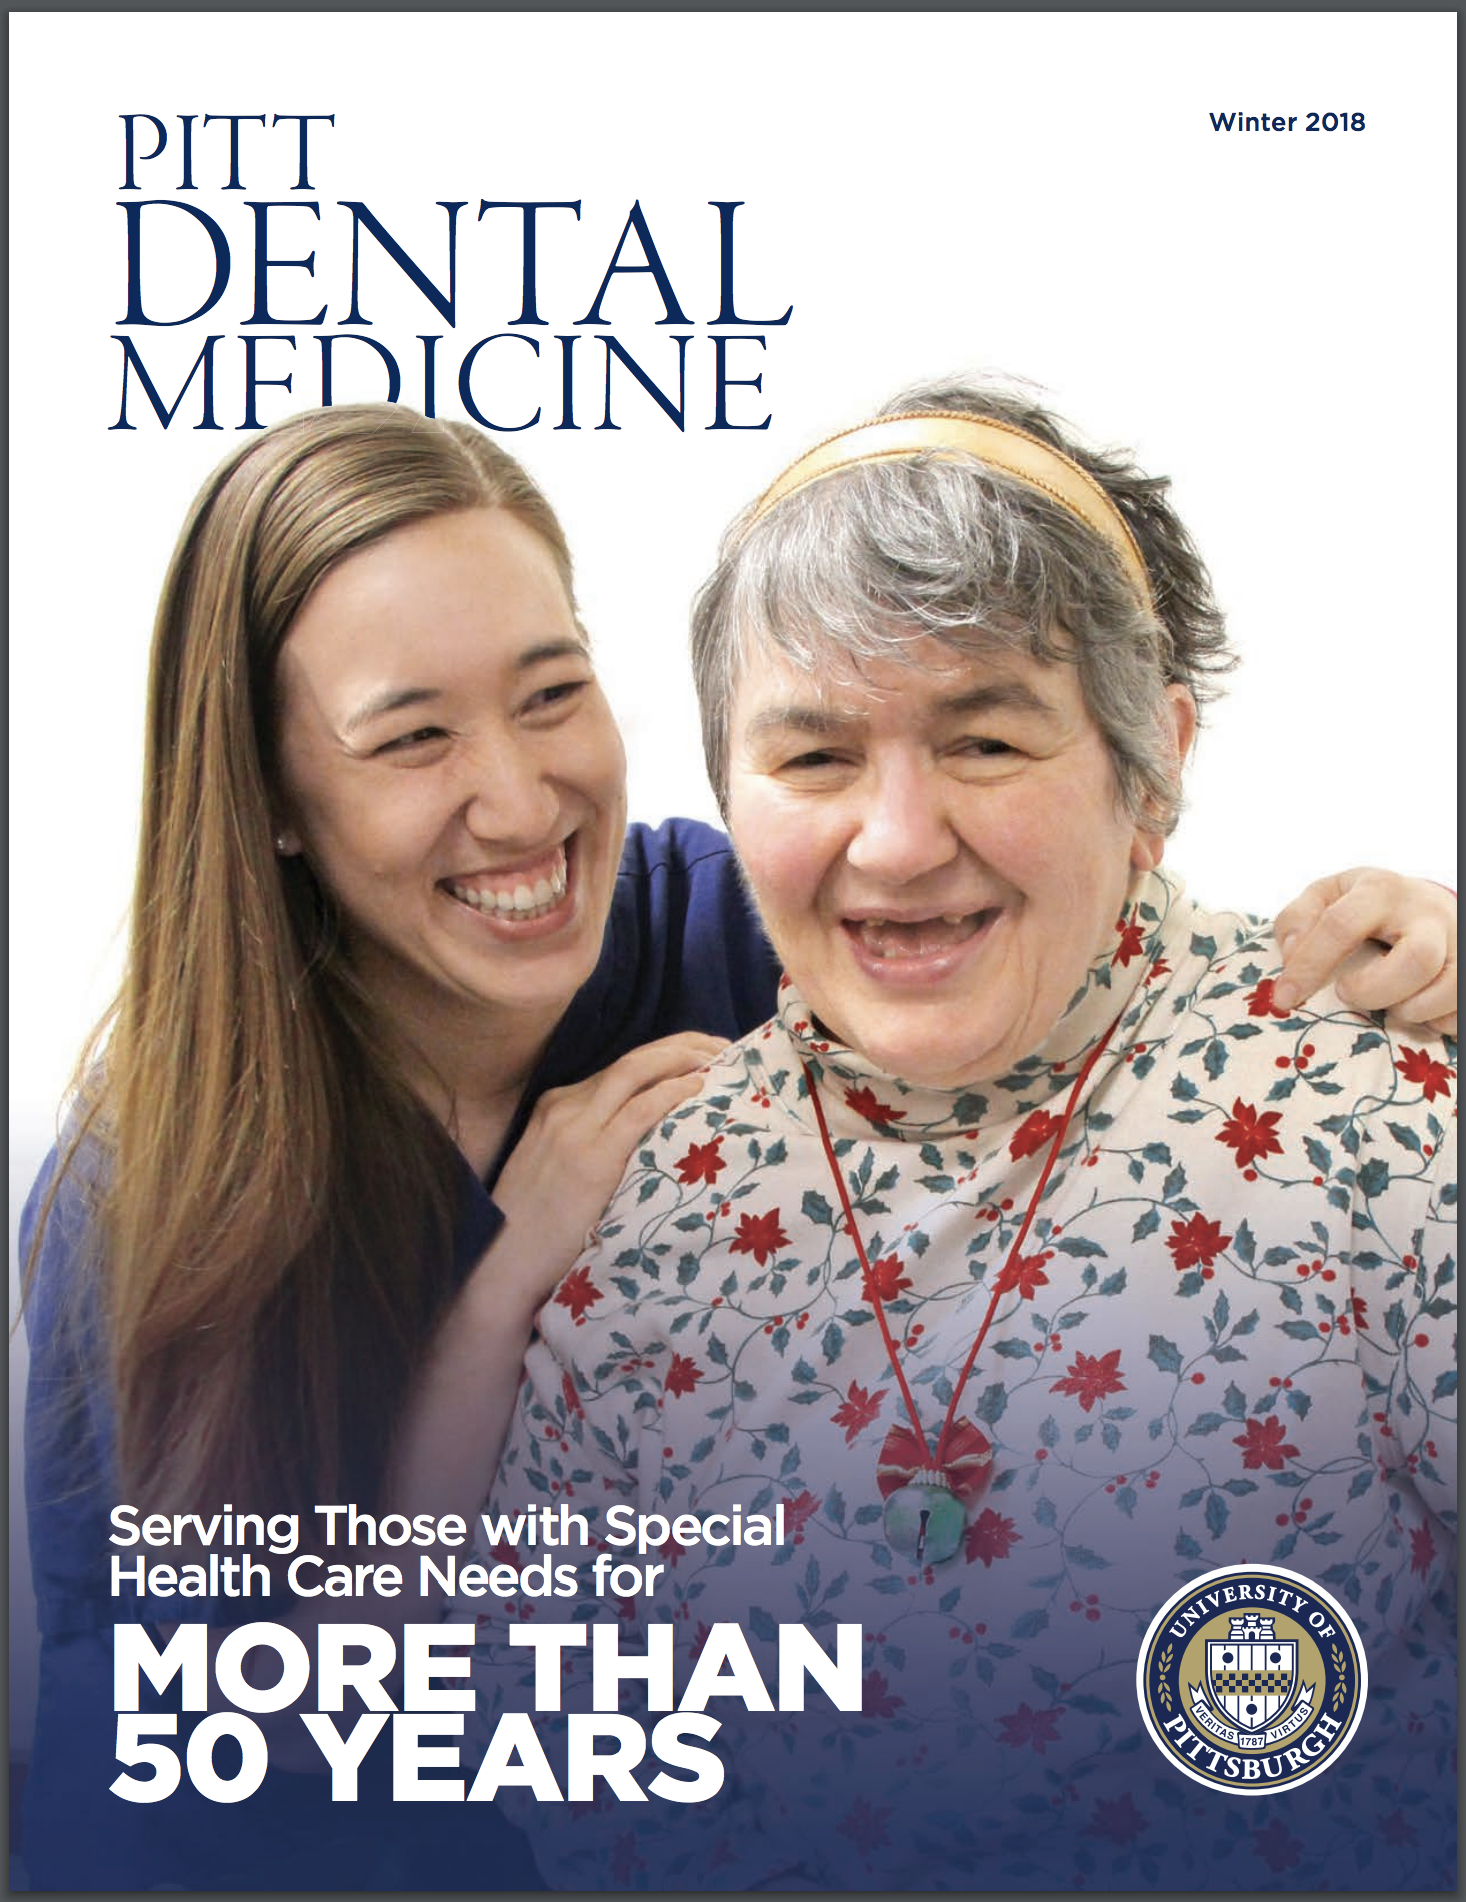 cover of the magazine, which features a female dental student and a patient, both smiling